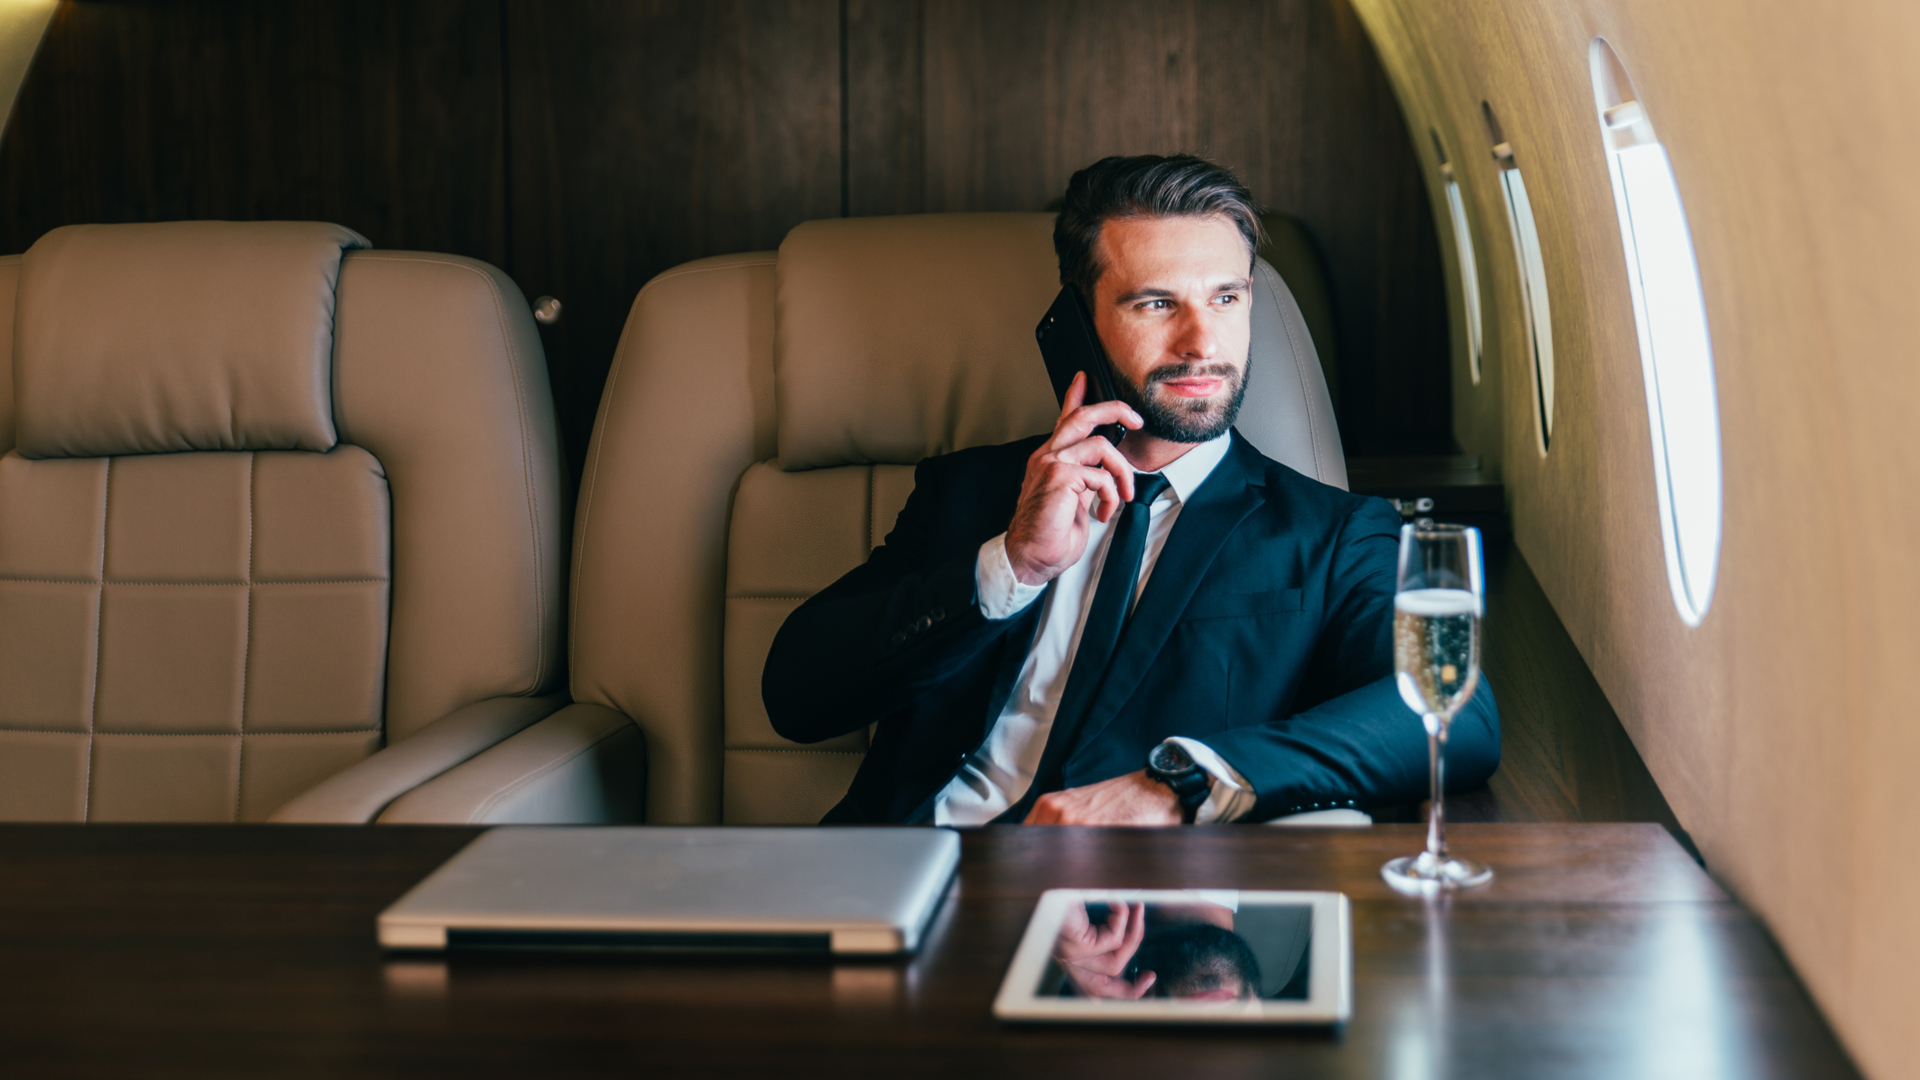 The Luxury Travel Marketer – Episode 74: CRMs & Sales Enablement In Luxury Travel